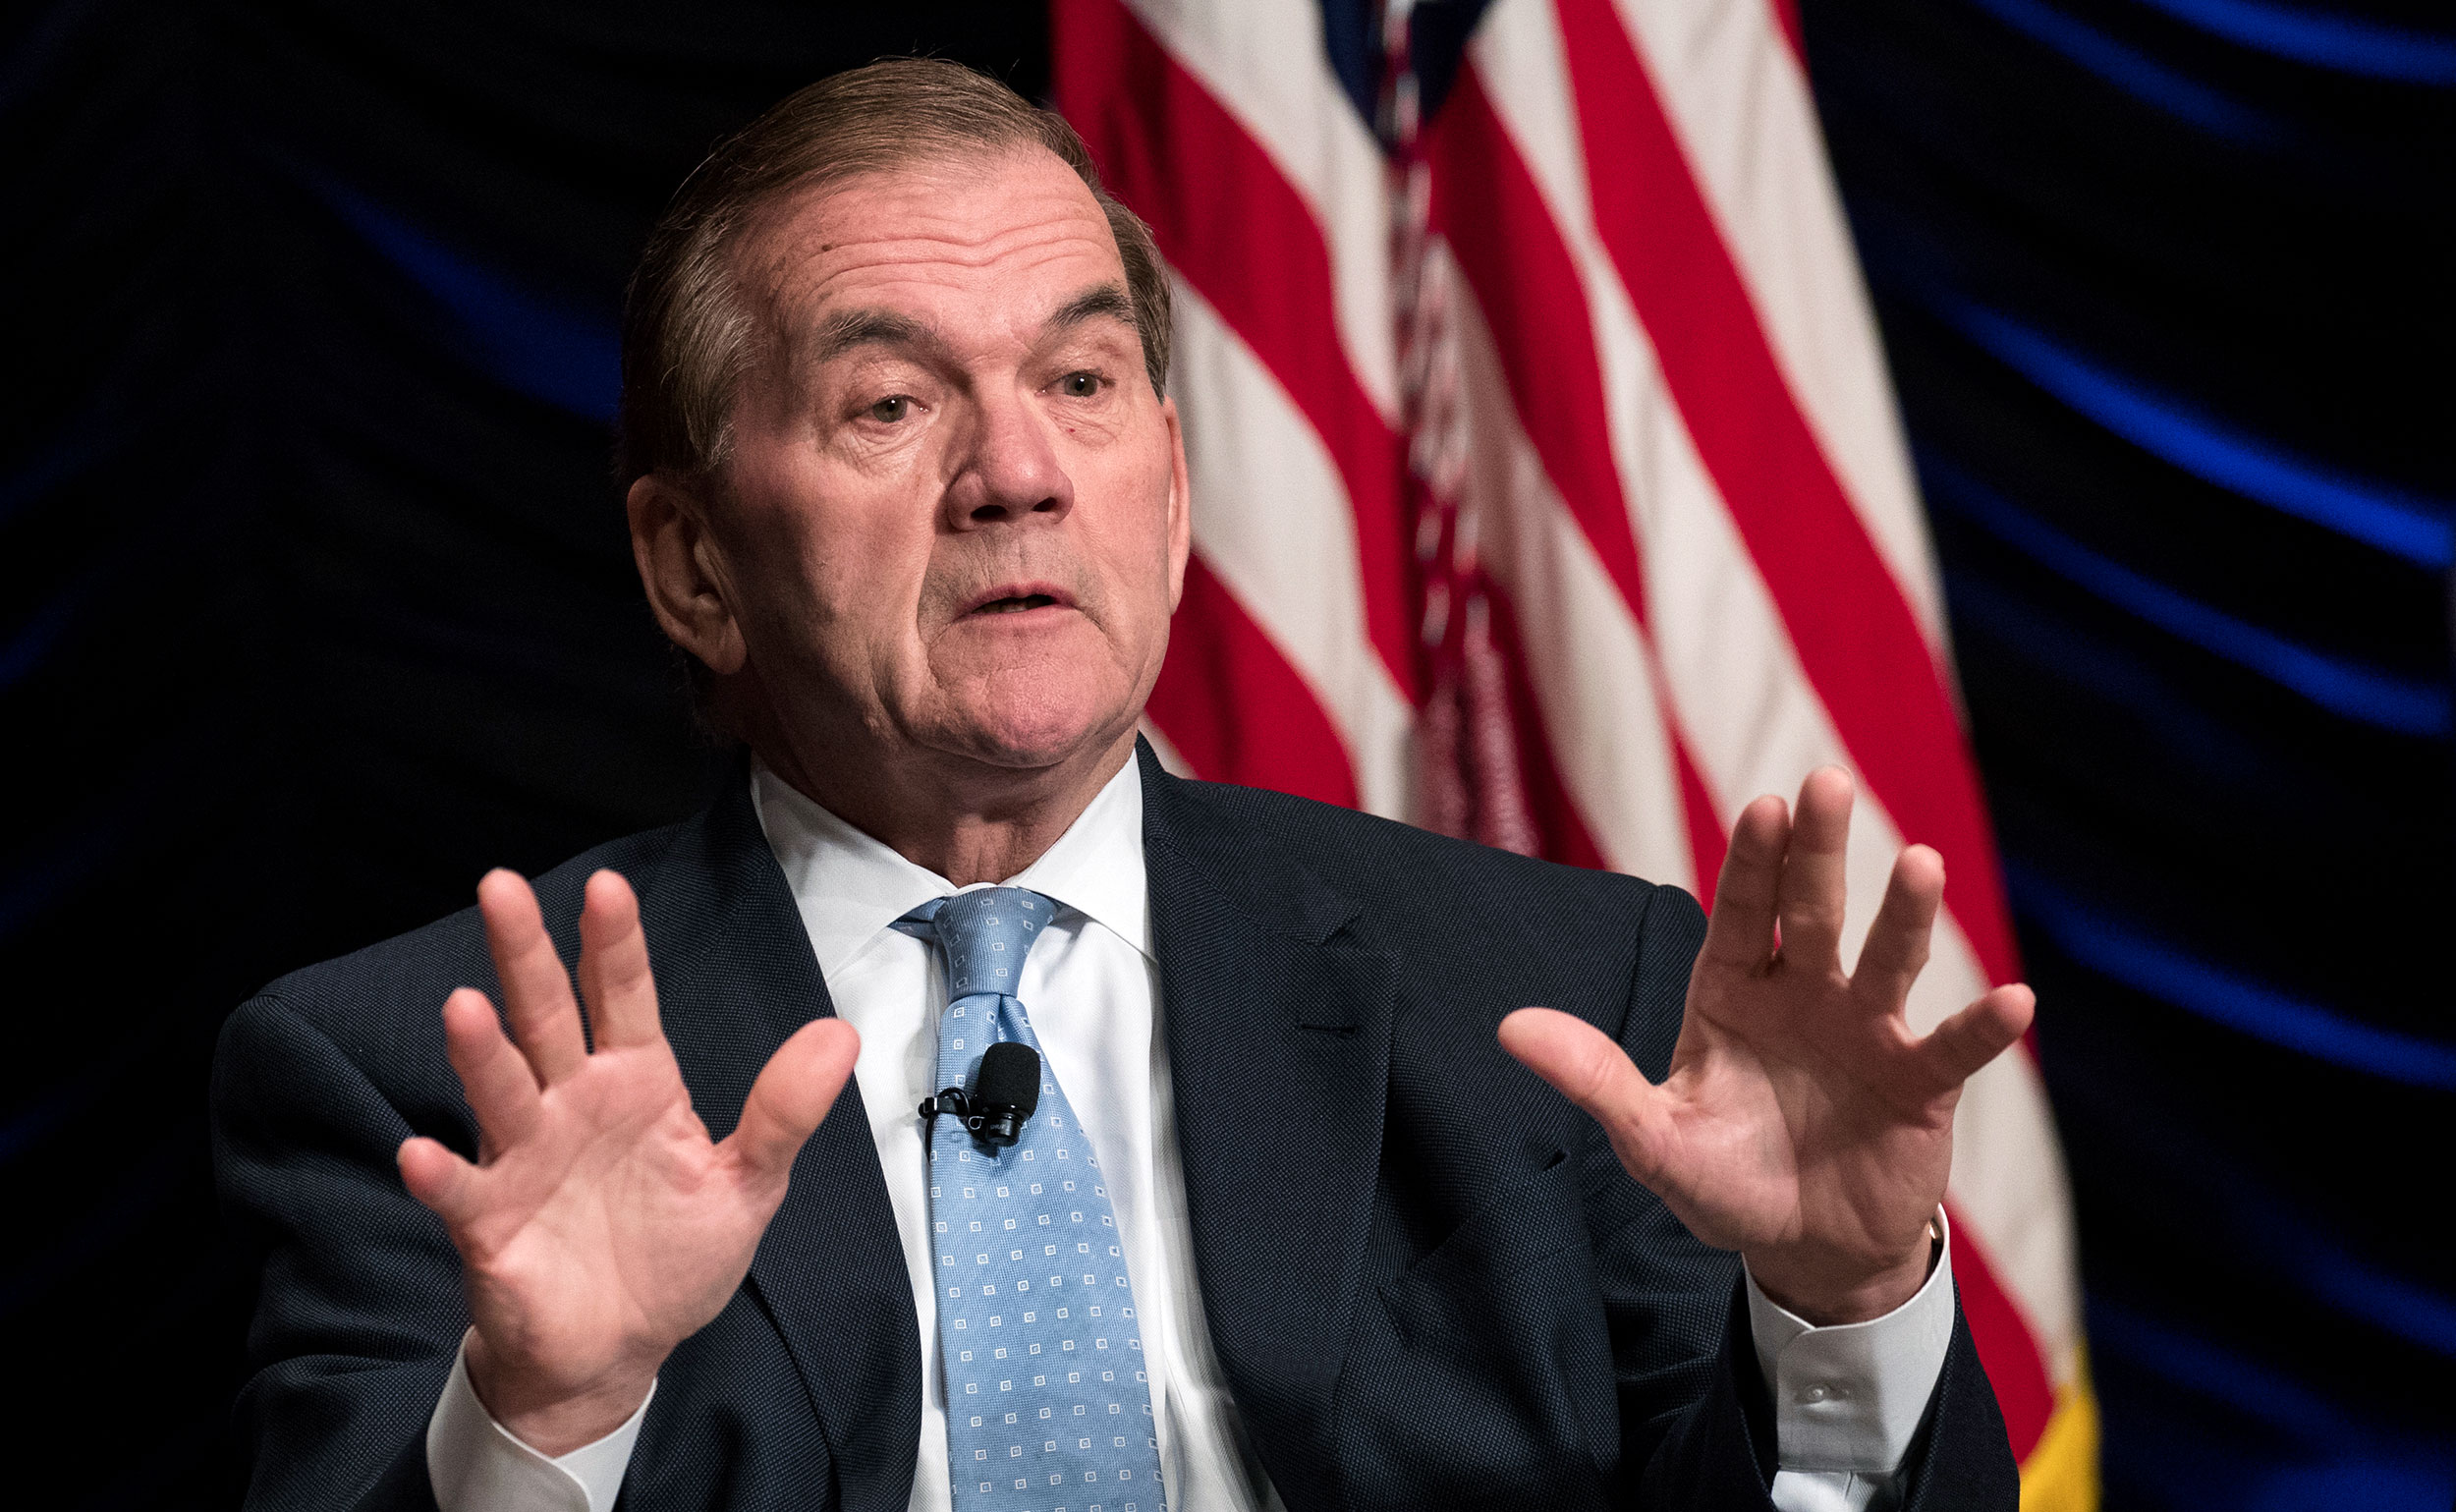 Former Department of Homeland Security Secretary Tom Ridge speaks during an event in Washington, DC in 2018.